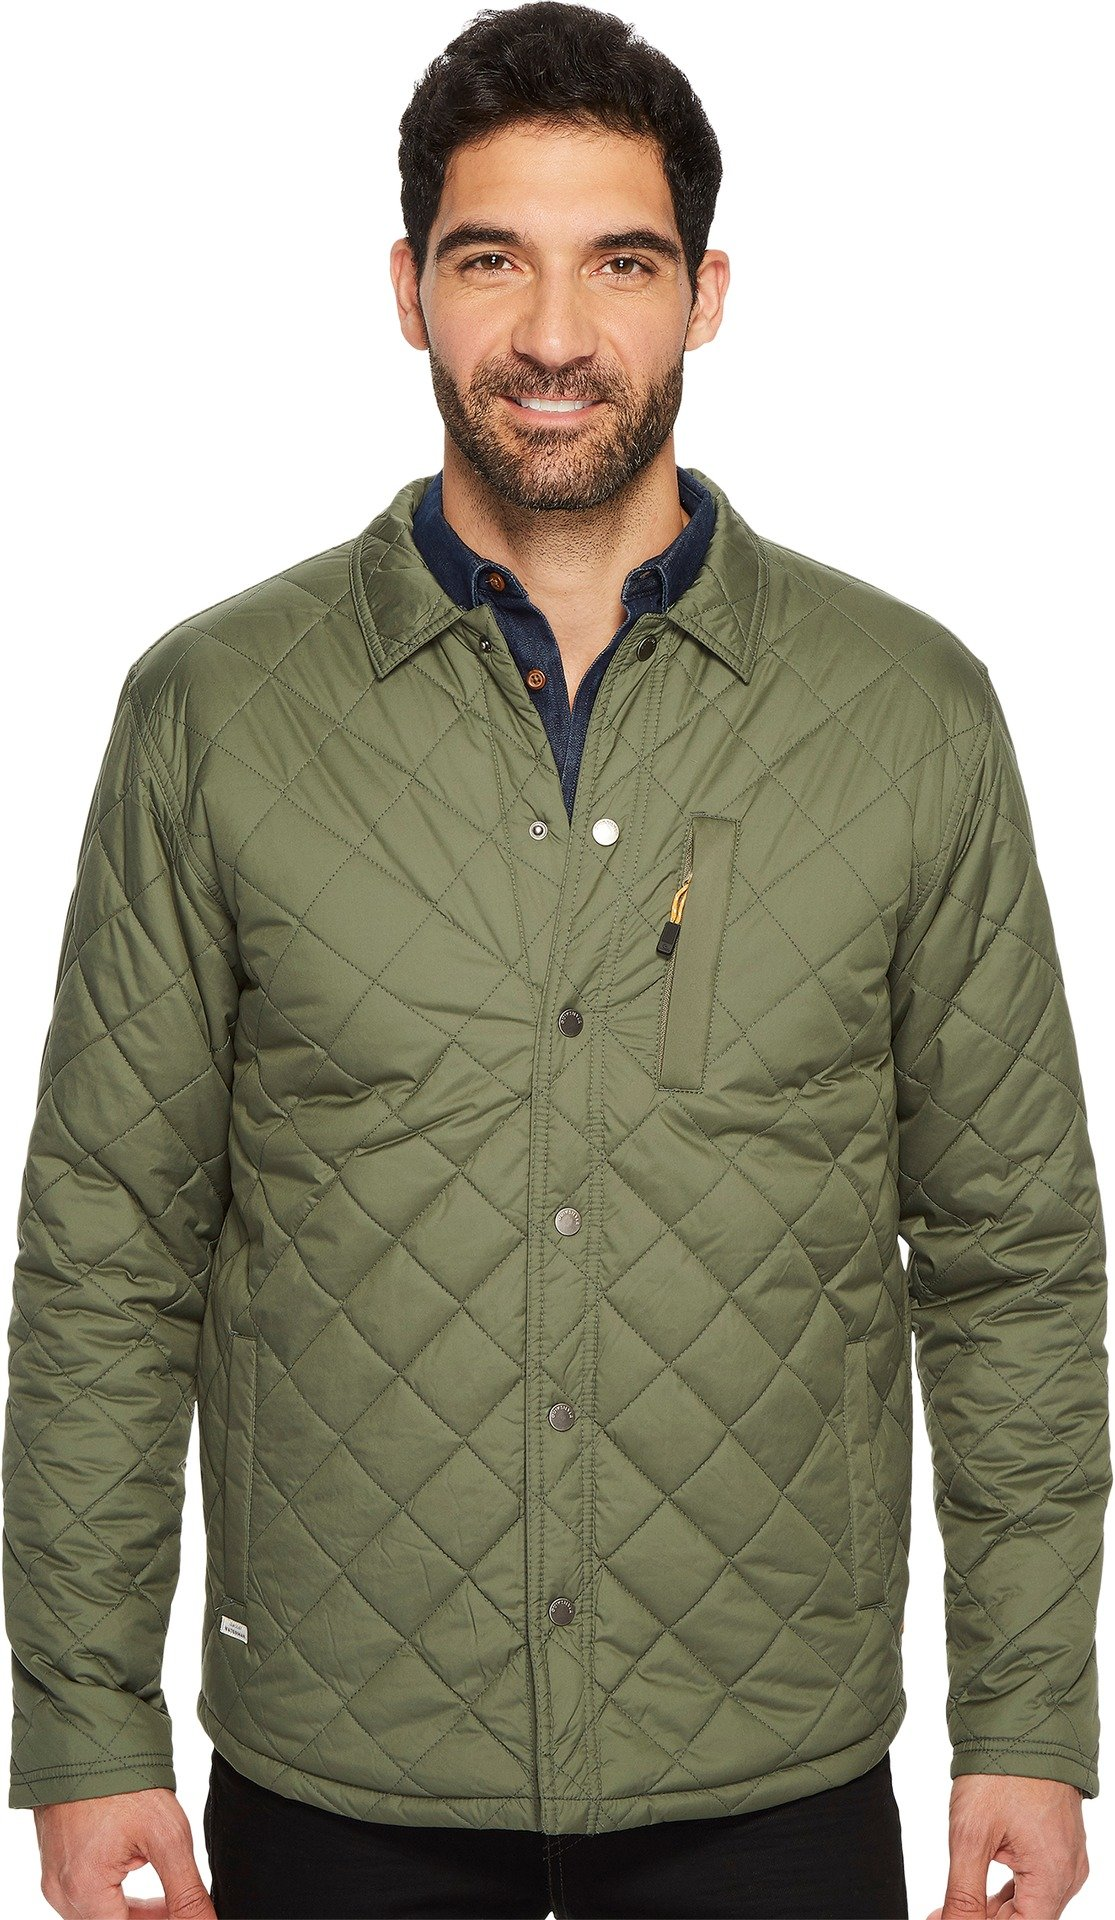 Quiksilver Waterman Men's Puffed up Quilted Jacket, Beetle, XL